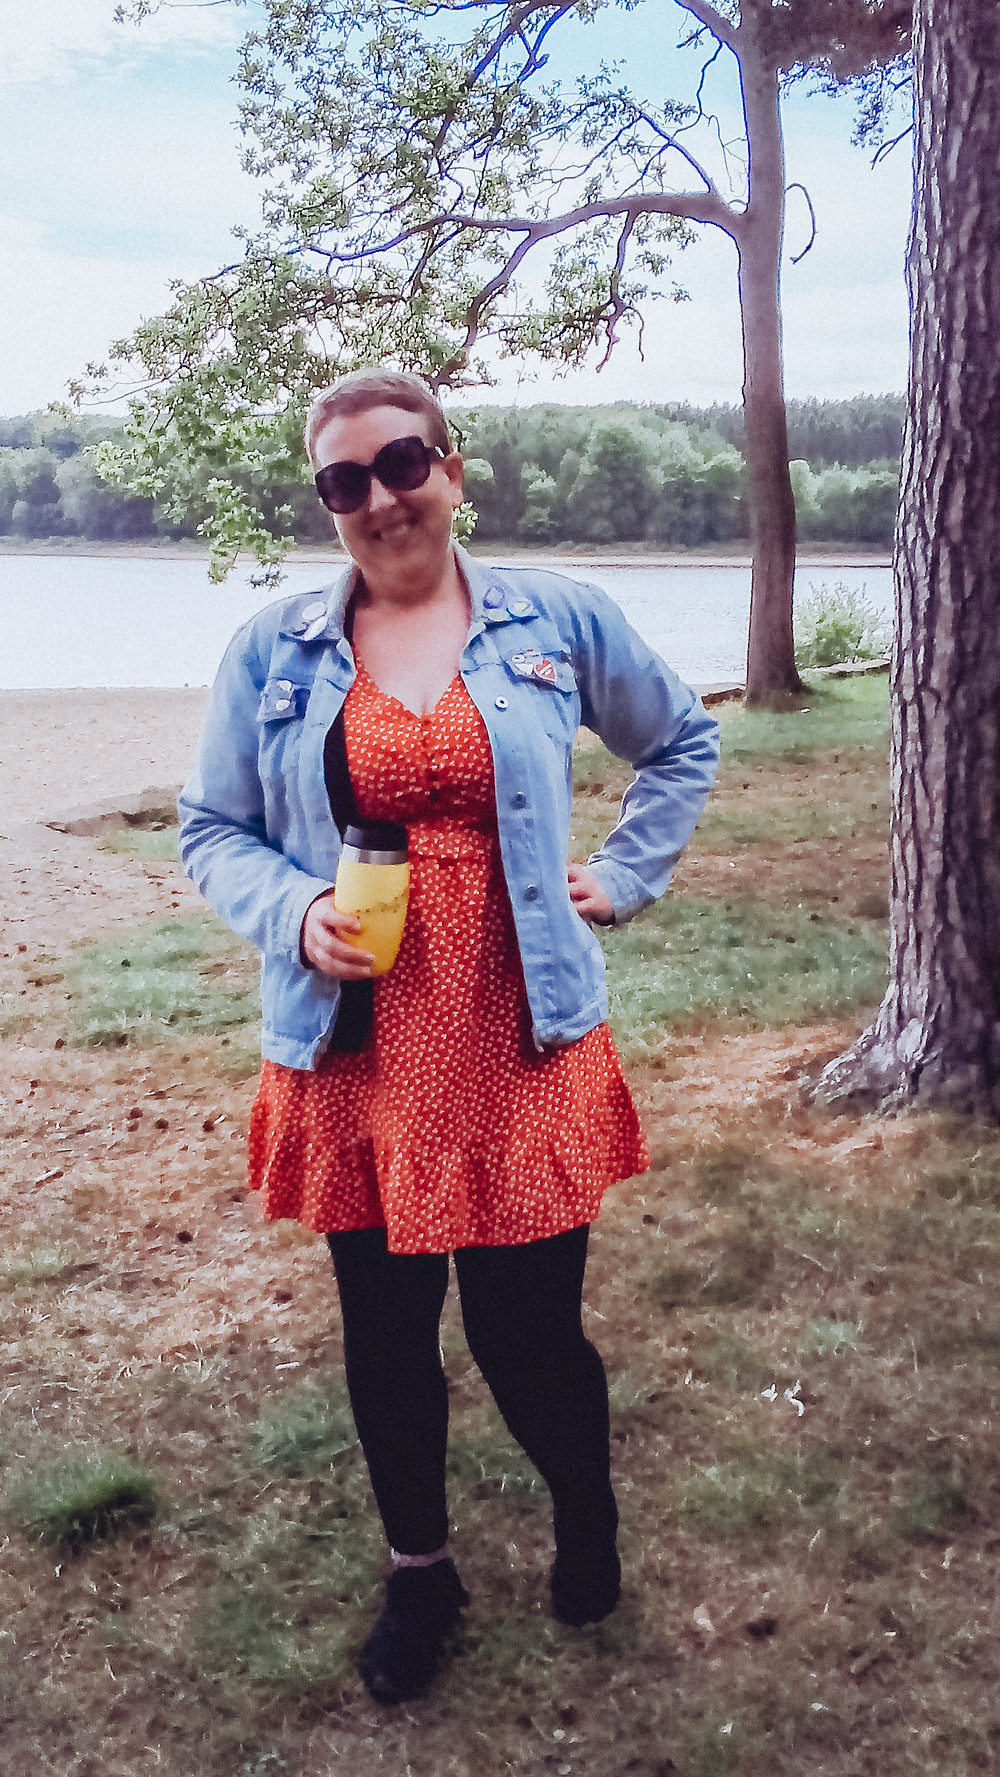 sarah standing on a grassy bank with a lake behind her holding a ohelo reusable coffee cup in one hand whilst the other in on her hip, she is smiling at the camera and is wearing sunglasses, a denim jacket and a red dress with black leggings and trainers.